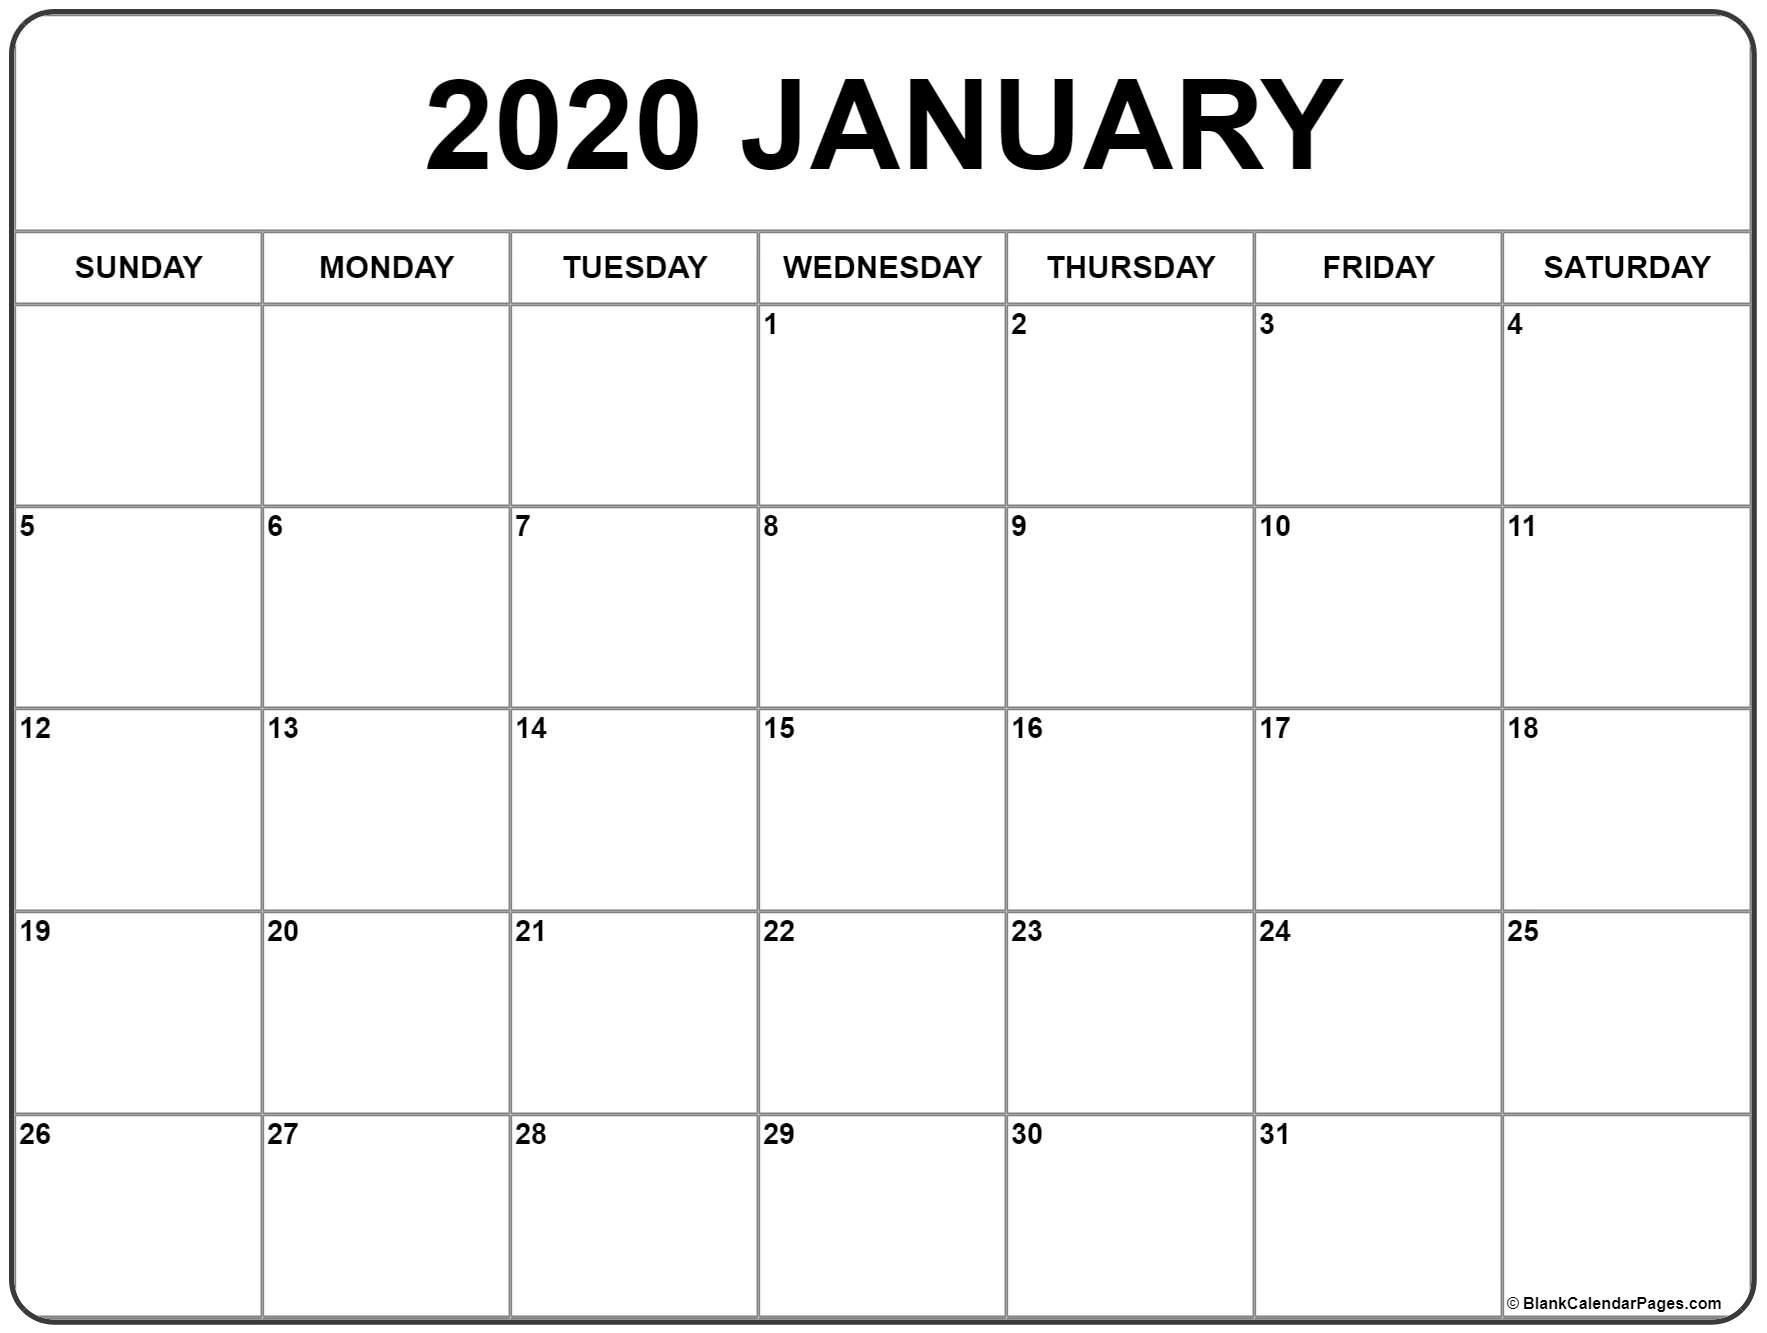 January 2020 Calendar | Free Printable Monthly Calendars-January 2020 Calendar Printable Cute